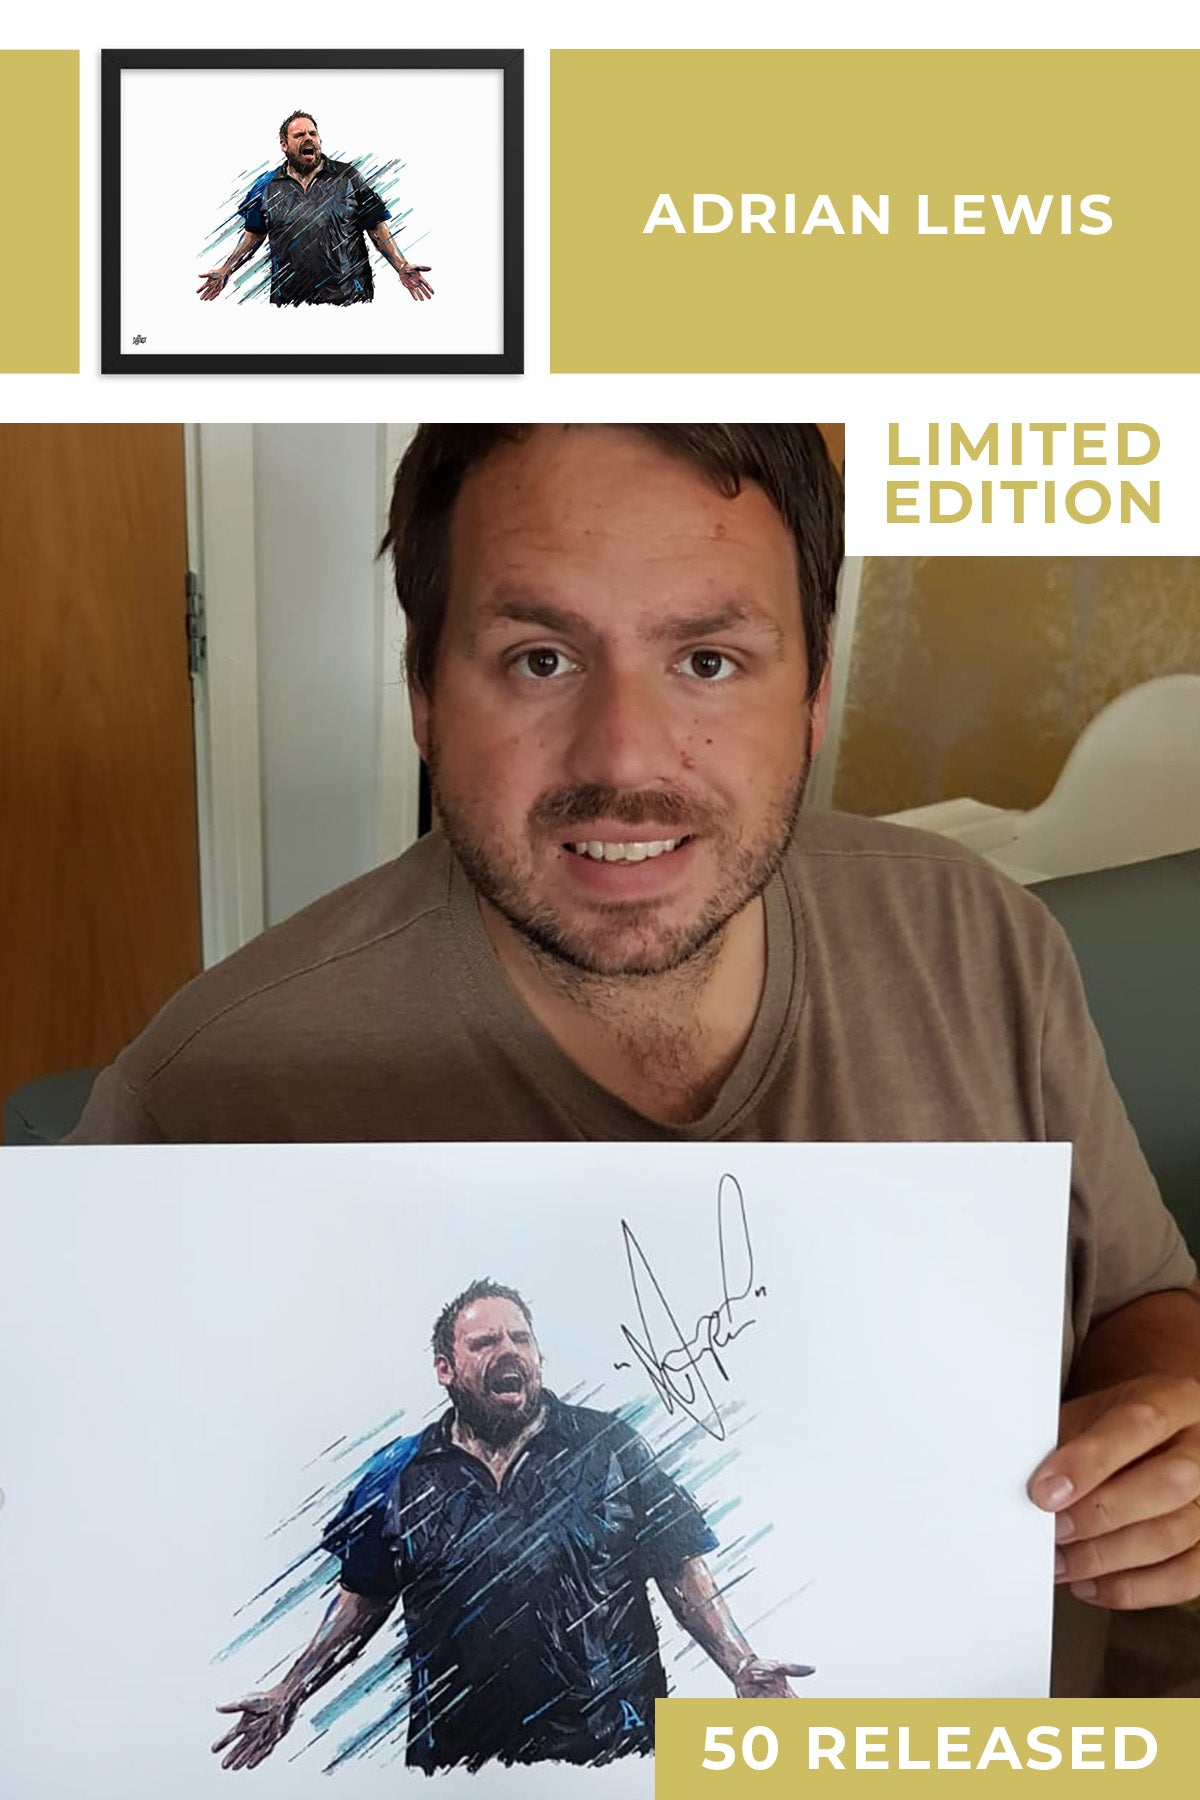 Adrian Lewis Limited Edition Signed Art Print - The Dartist